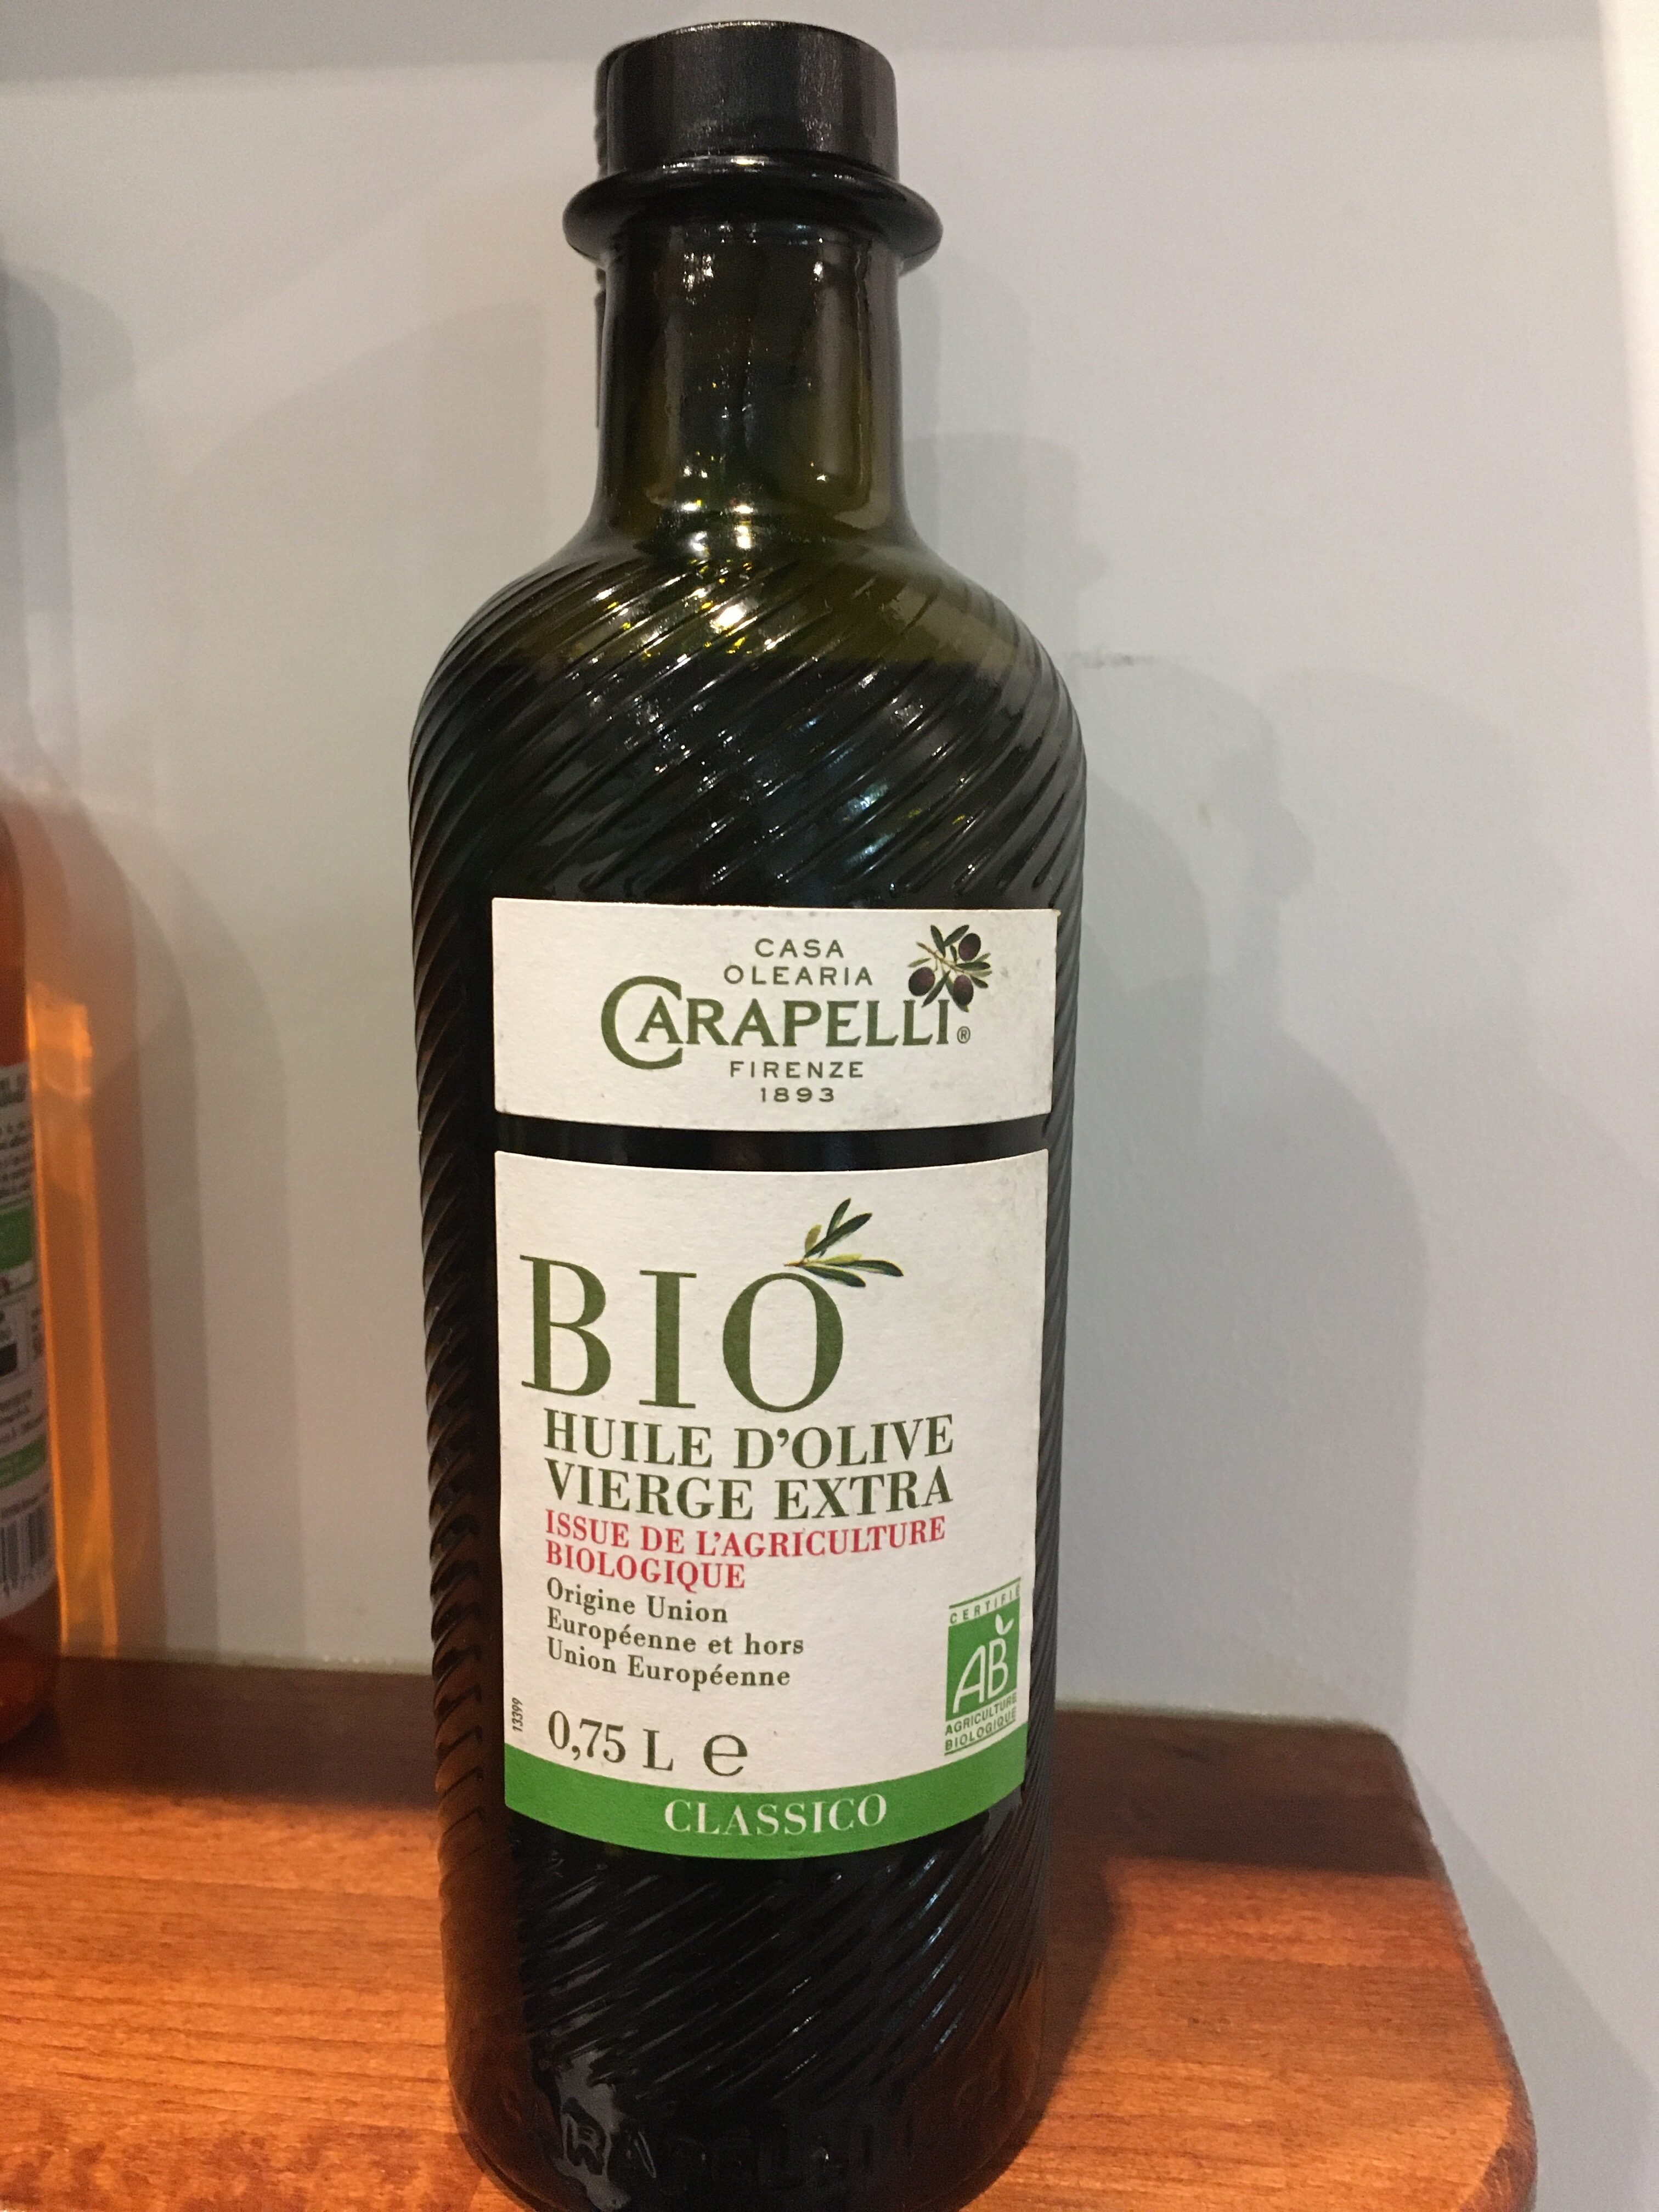 Huile d'olive vierge extra Bio Classico 75 CL - Product - fr